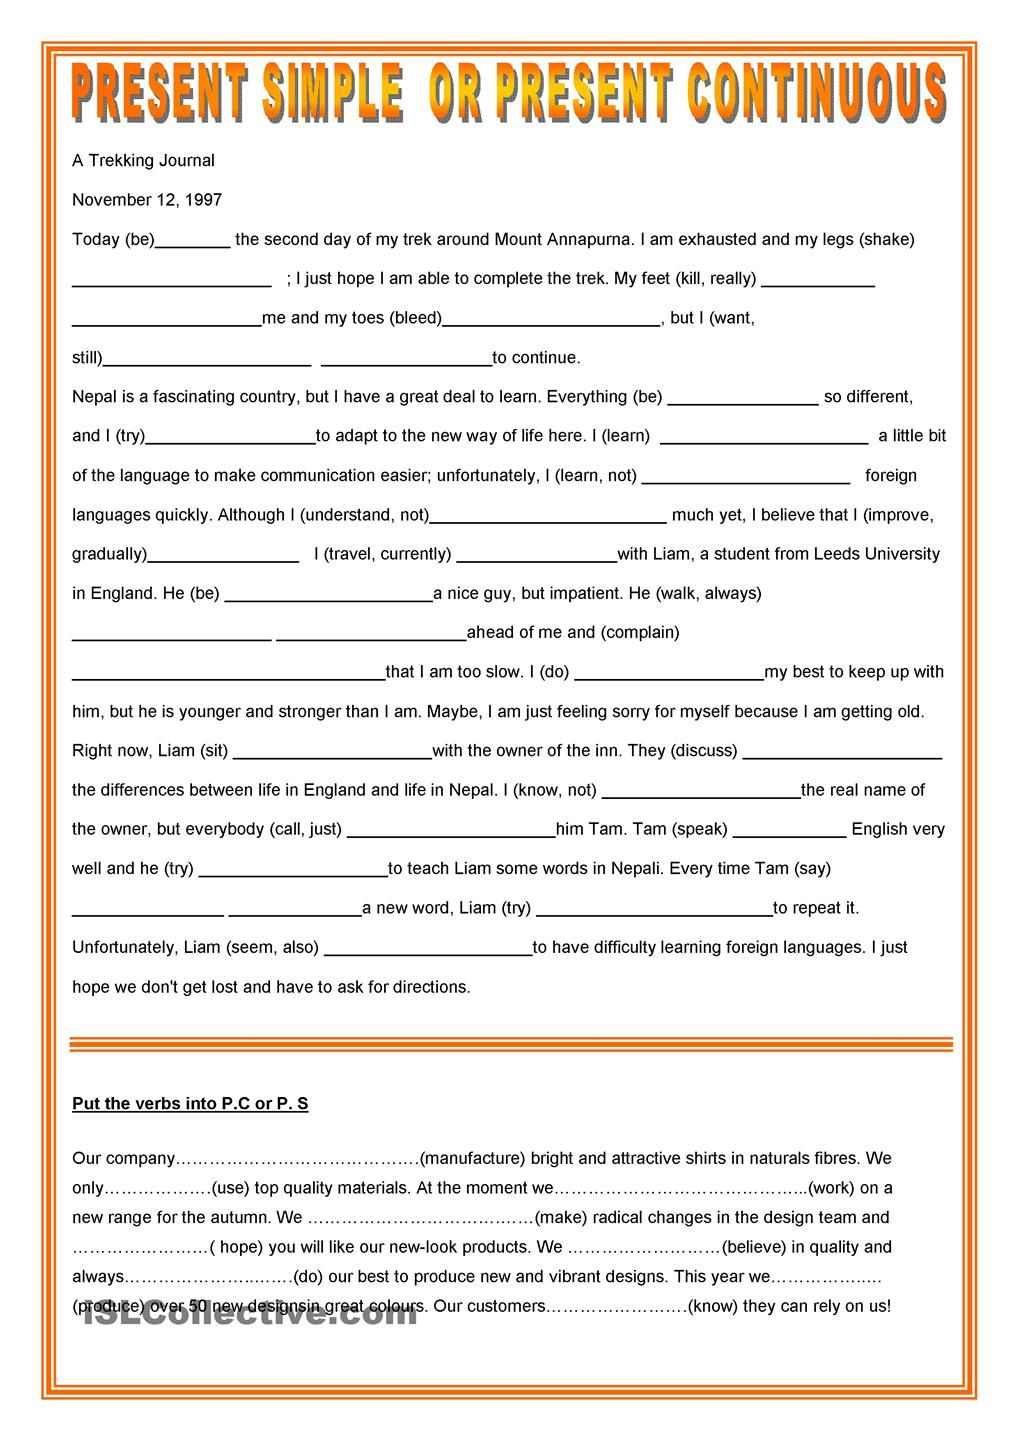 Writing future tense of verb worksheet turtle diary - Present Simple Or Continuous Present Simple Vs Continuous Progressive Tense Fun Activities Games Elementary Pre Intermediate Elementary School